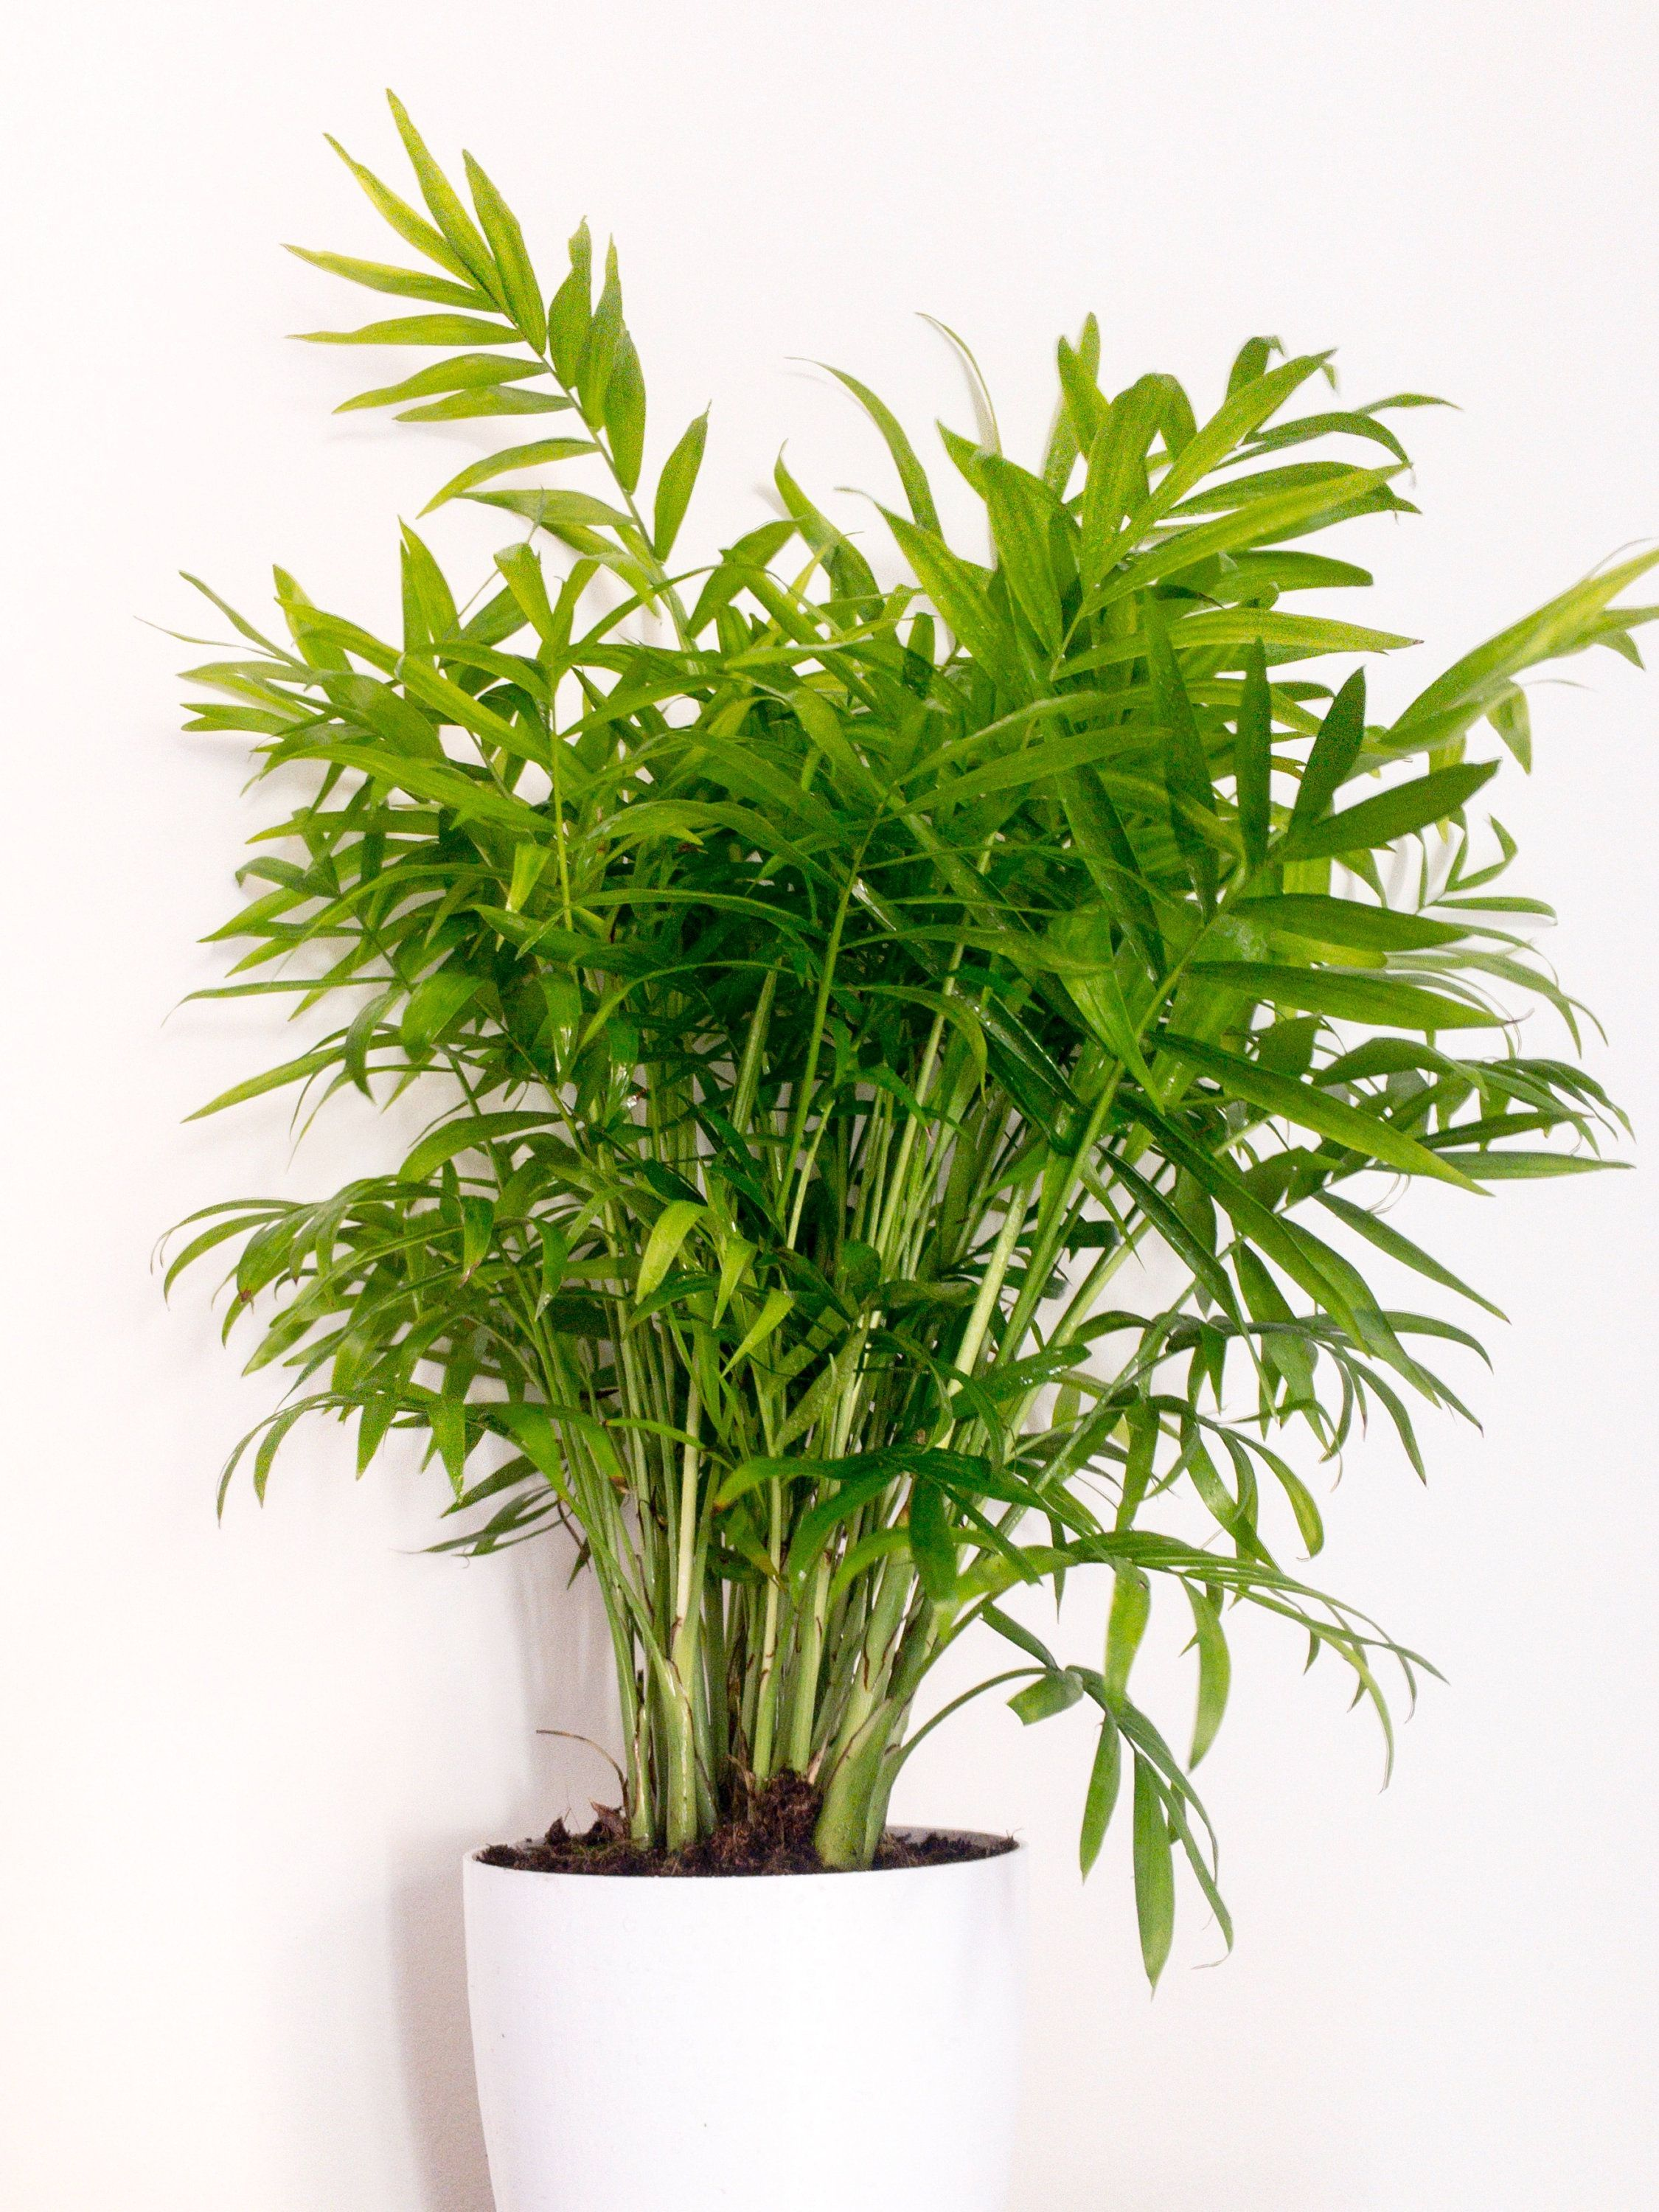 Grown Golden Cane Palm Areca Palm Air Purifying Indoor Plant